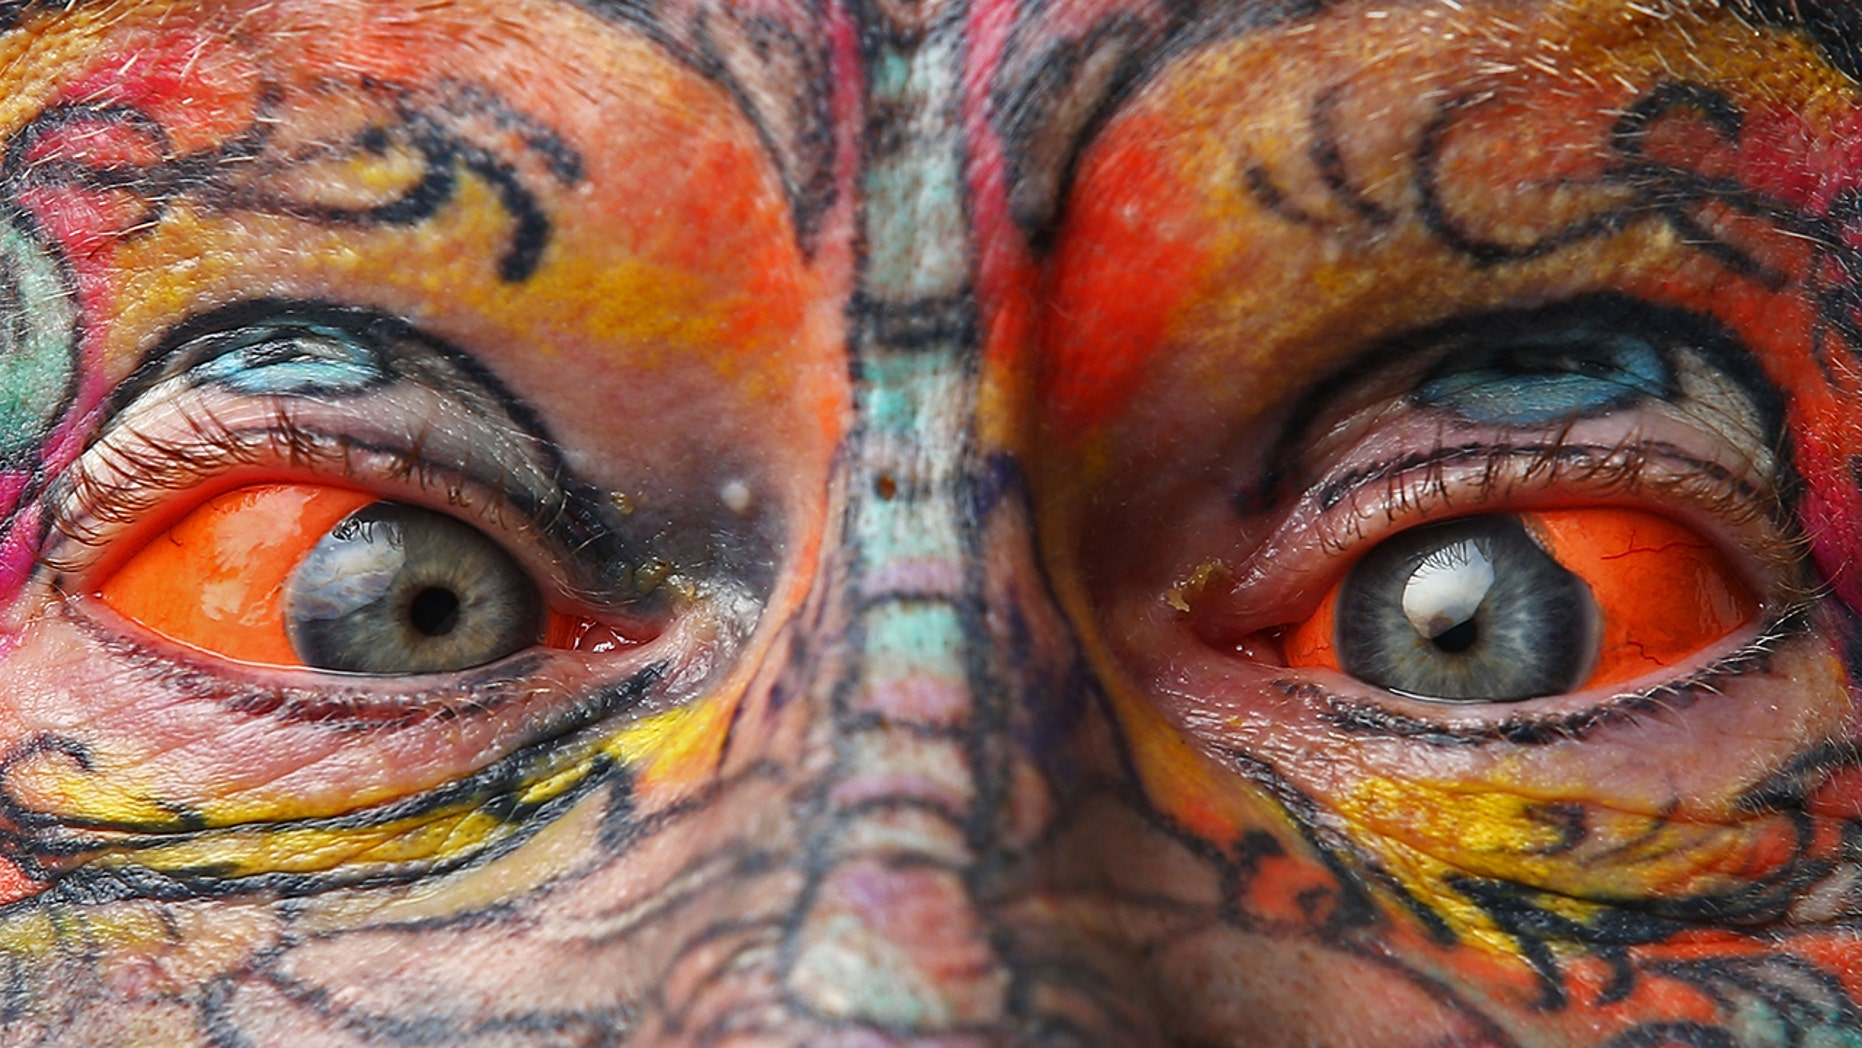 Authorities are considering banning eyeball tattoos in Washington state. (Getty)